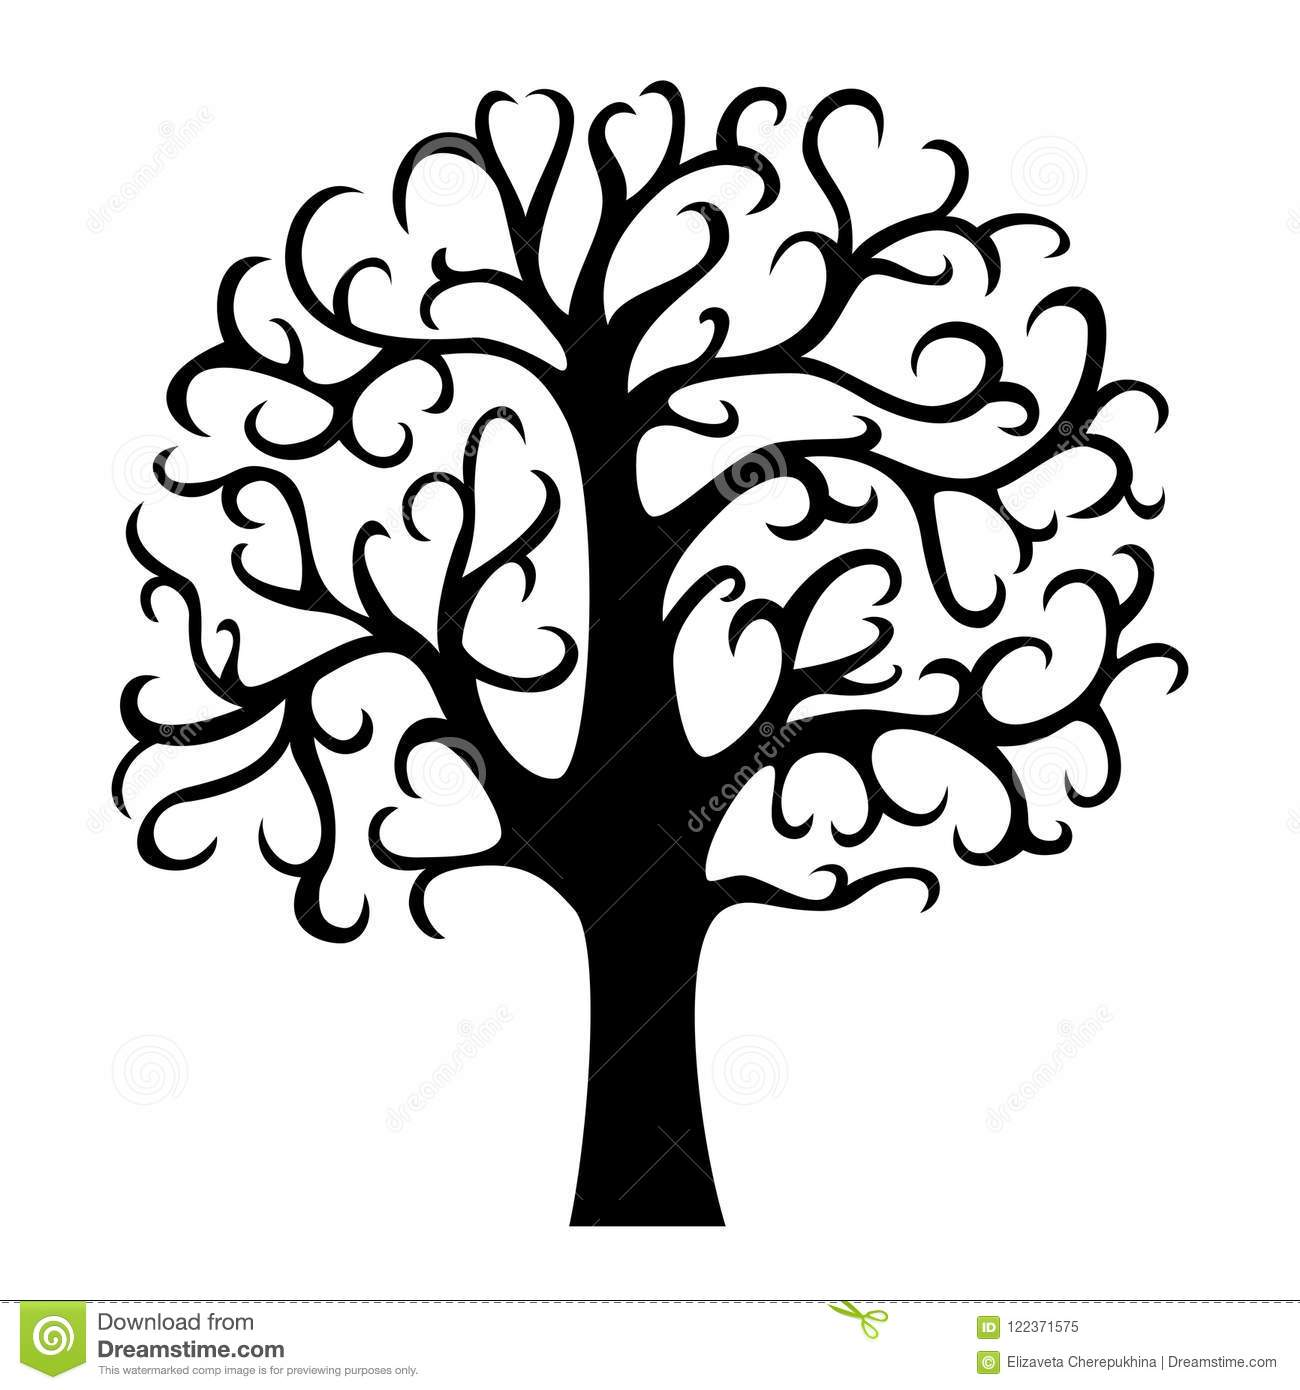 Family tree silhouette. Life tree. Vector illustration isolated